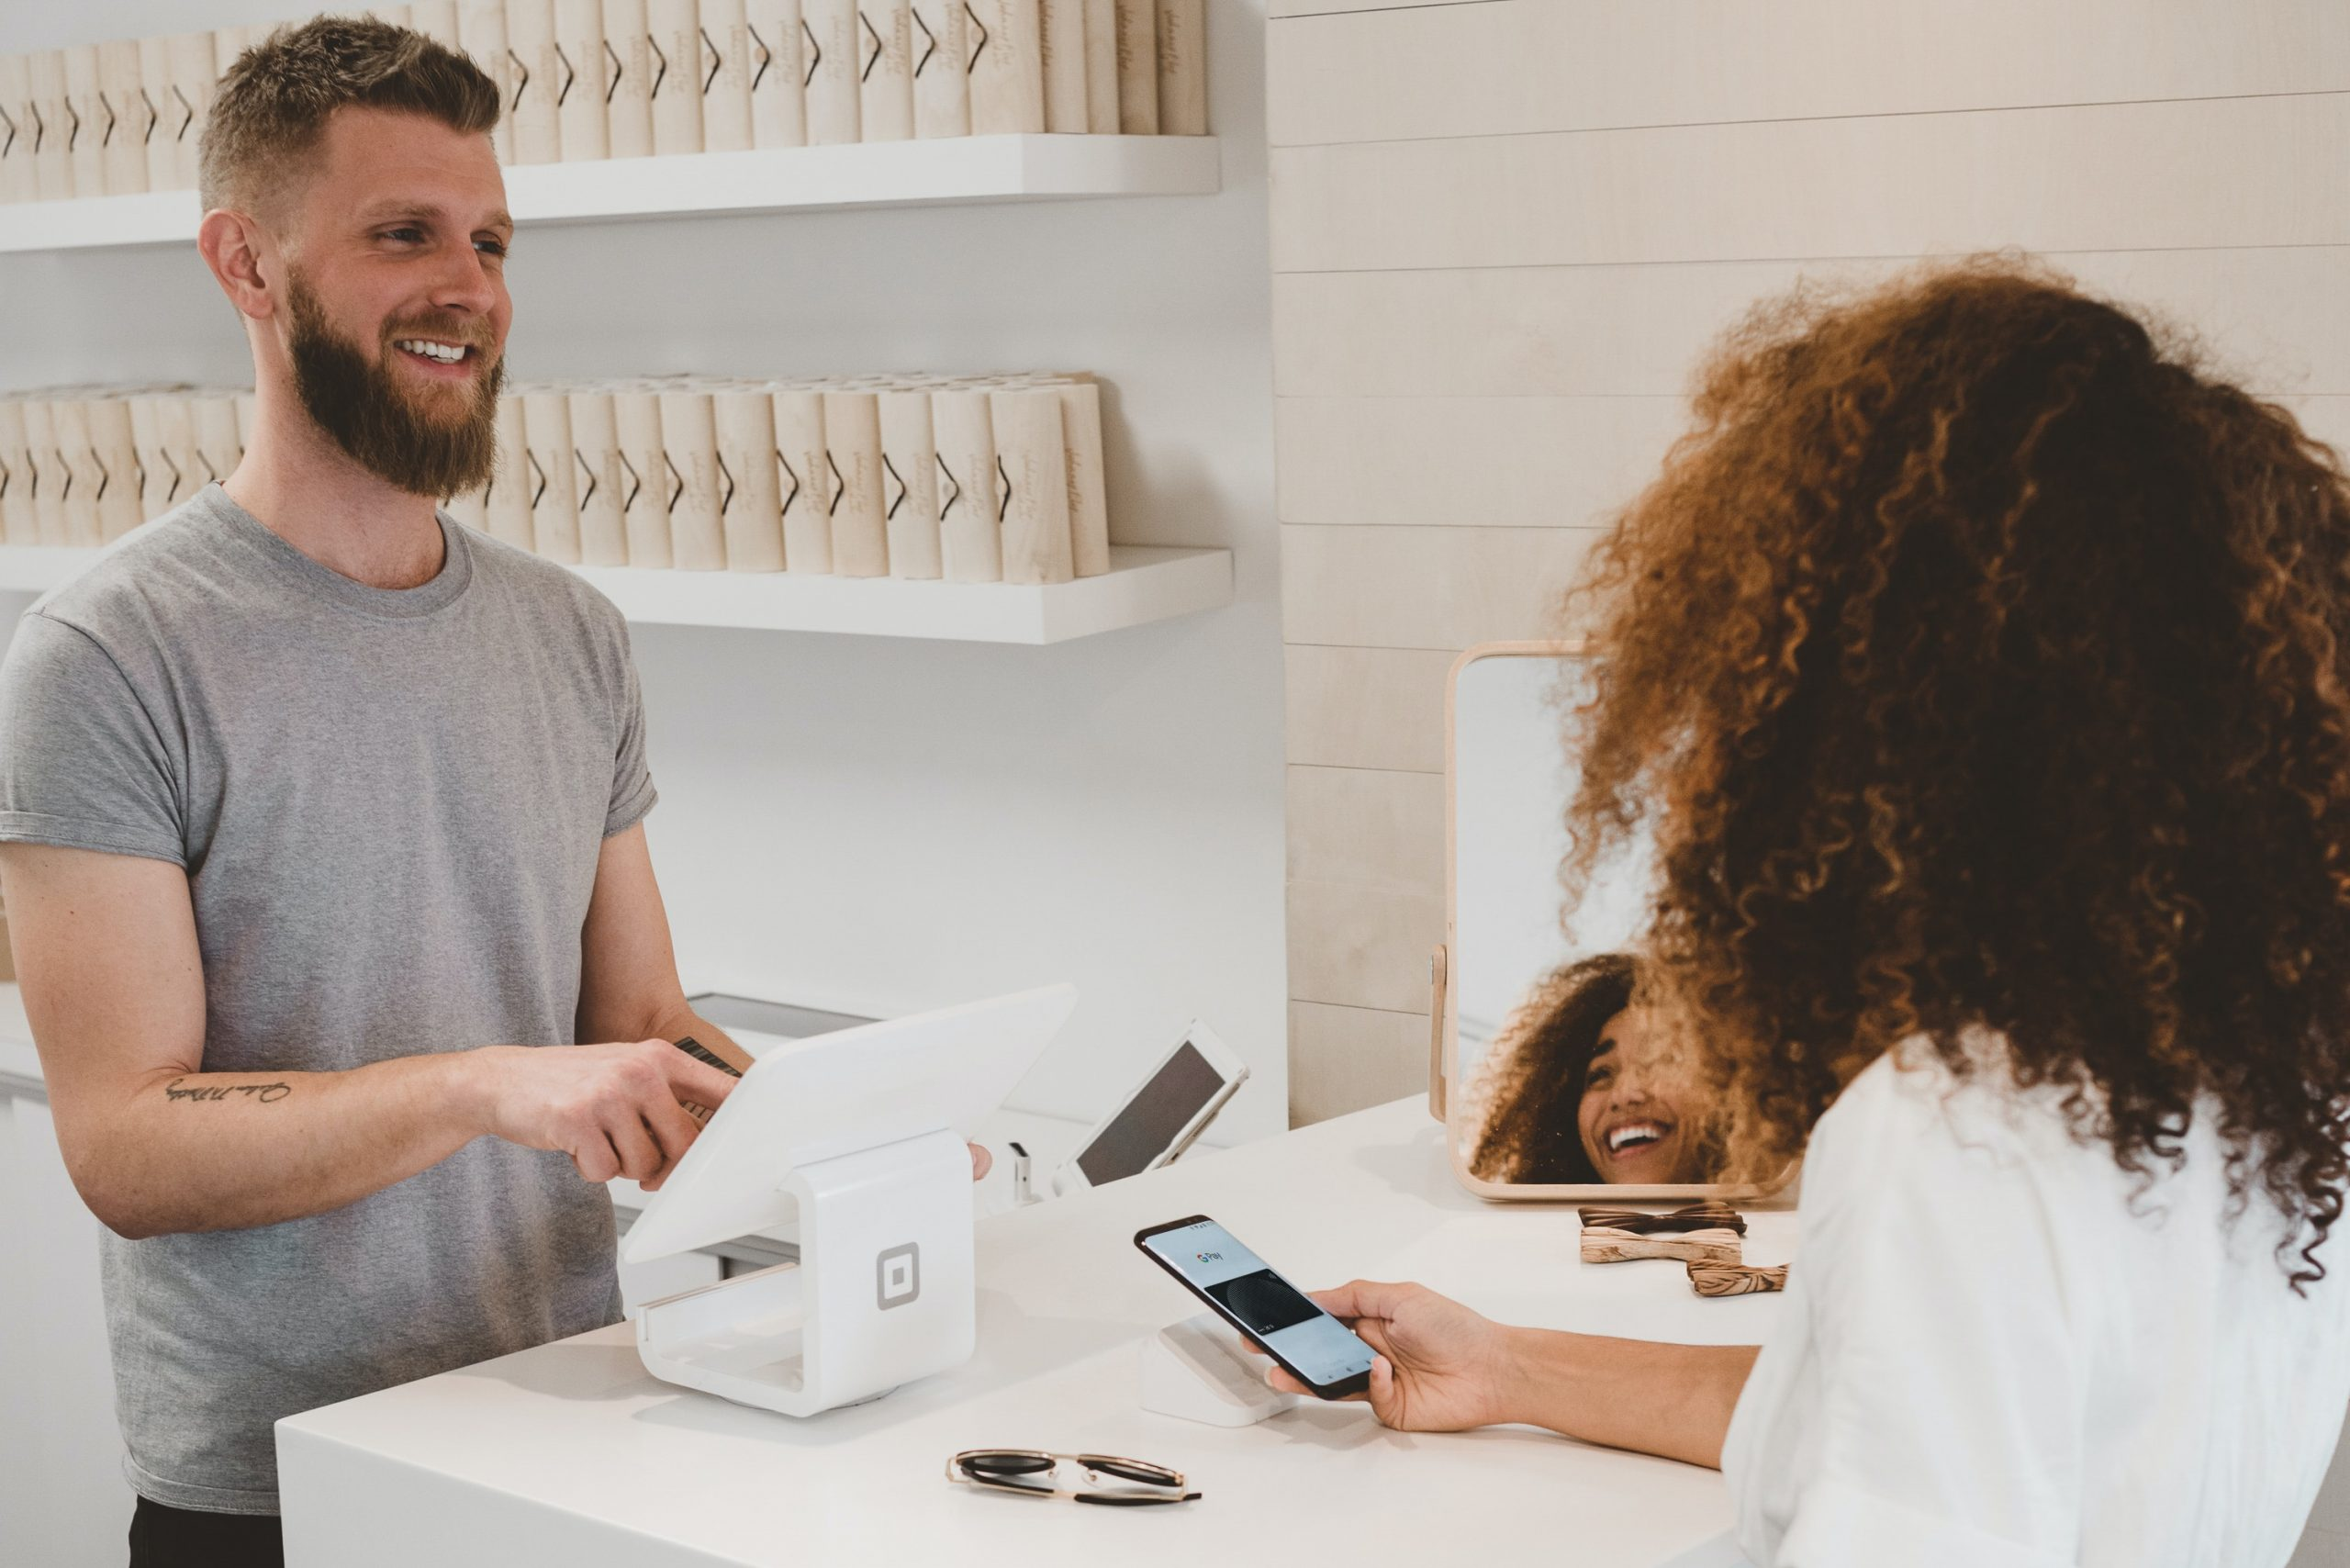 man in grey crew-neck t-shirt smiling to woman on counter